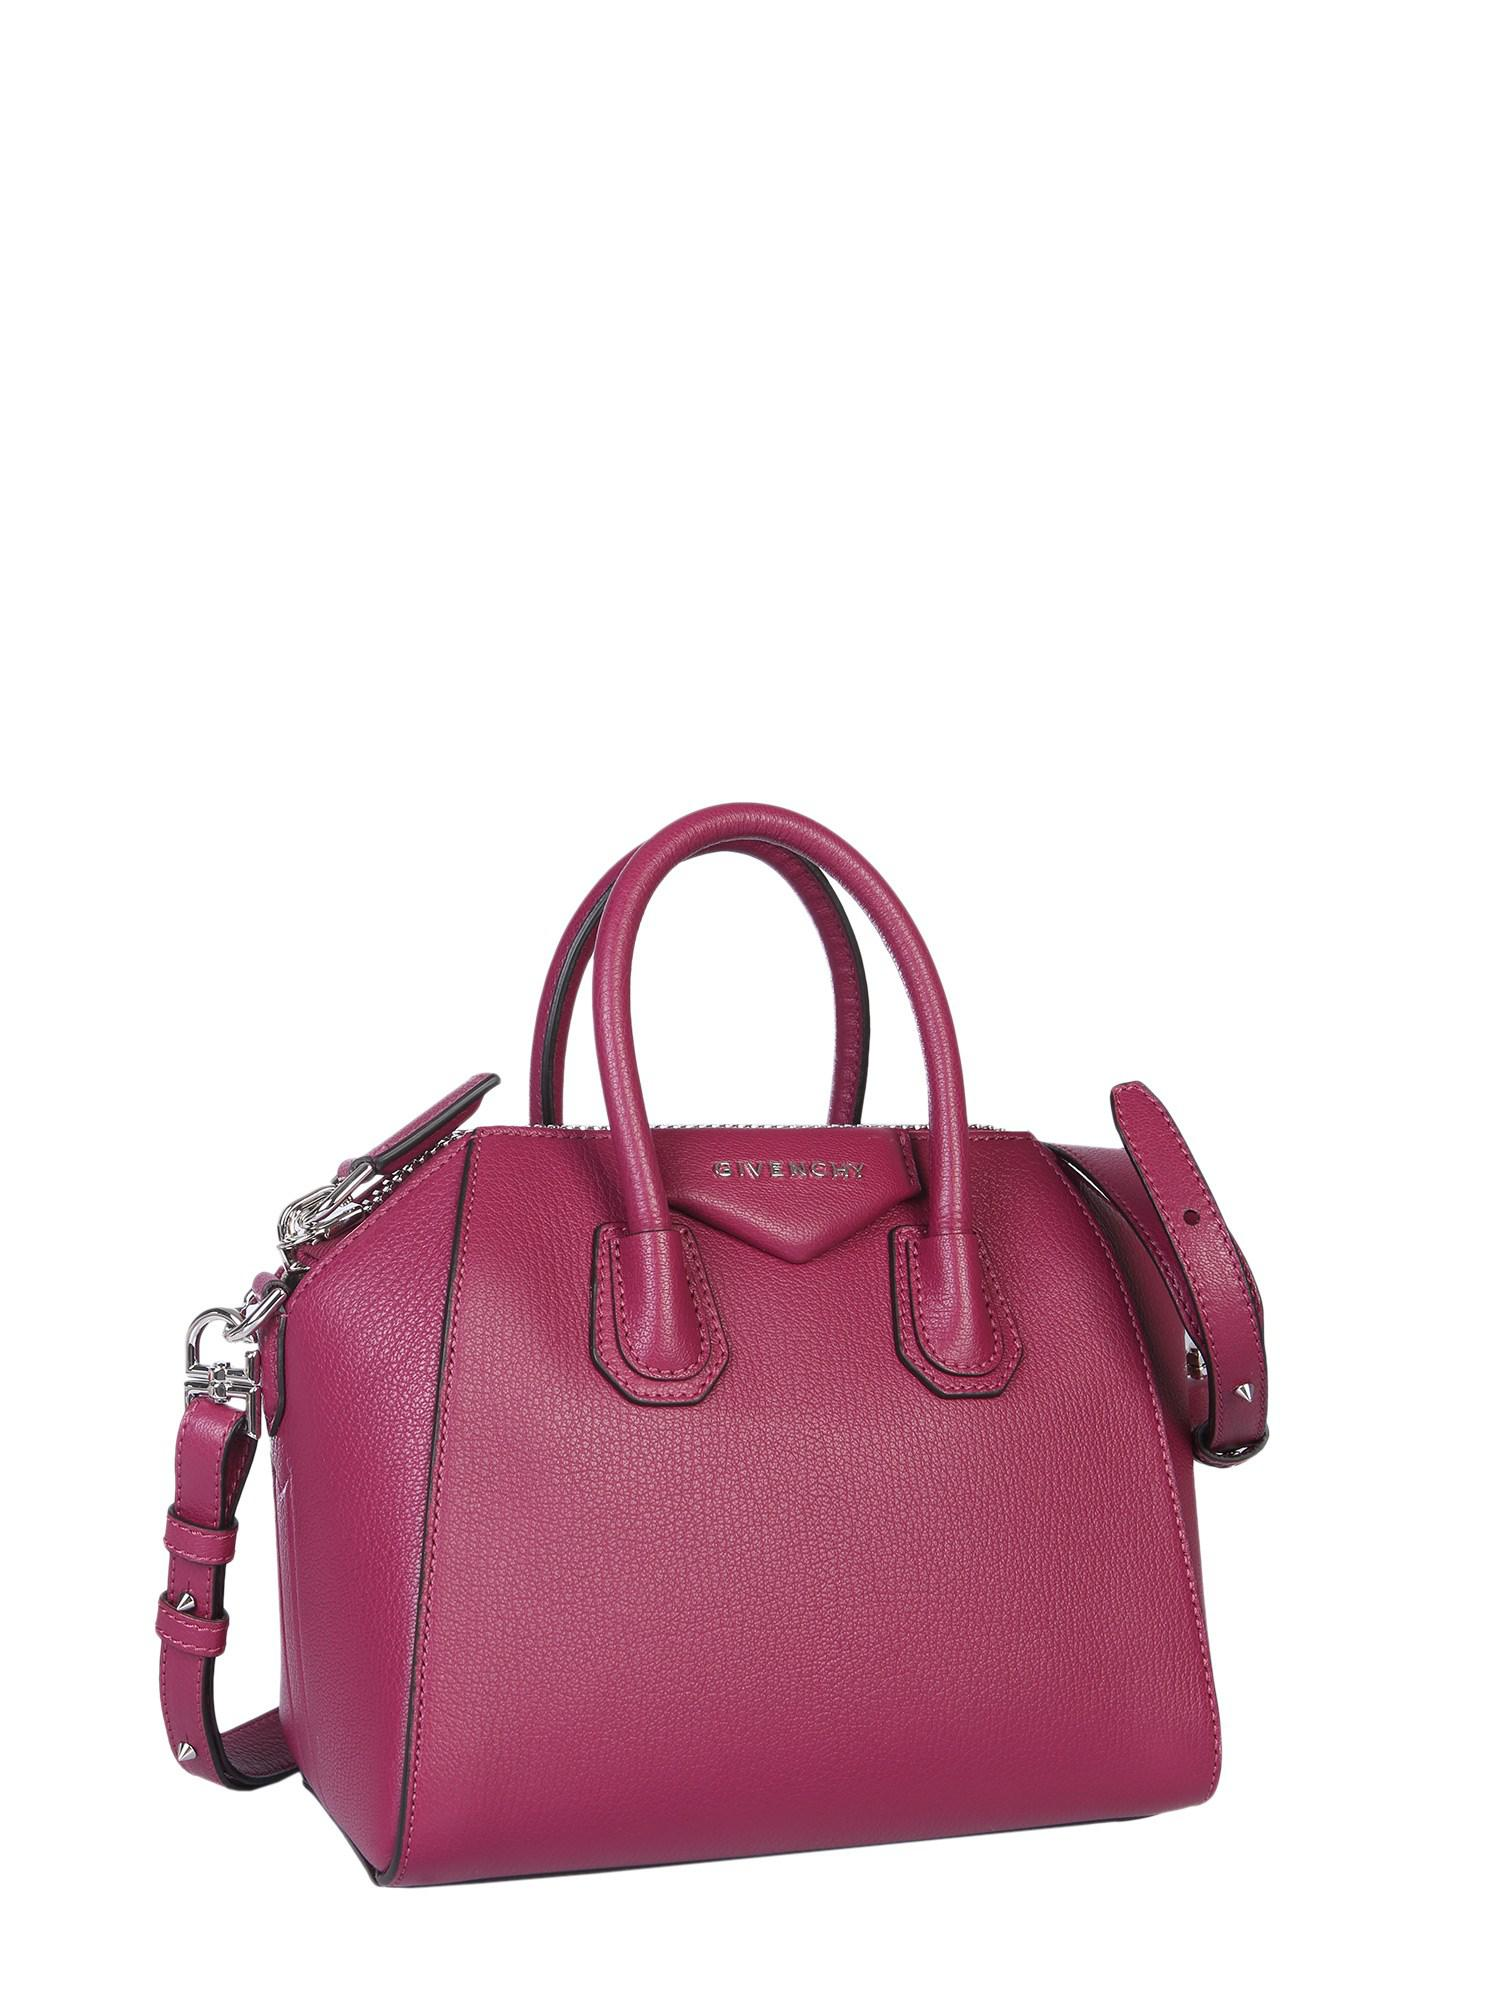 Givenchy - Purple Small Antigona Bag In Hammered Leather - Lyst. View  fullscreen 0a3f2b25dc